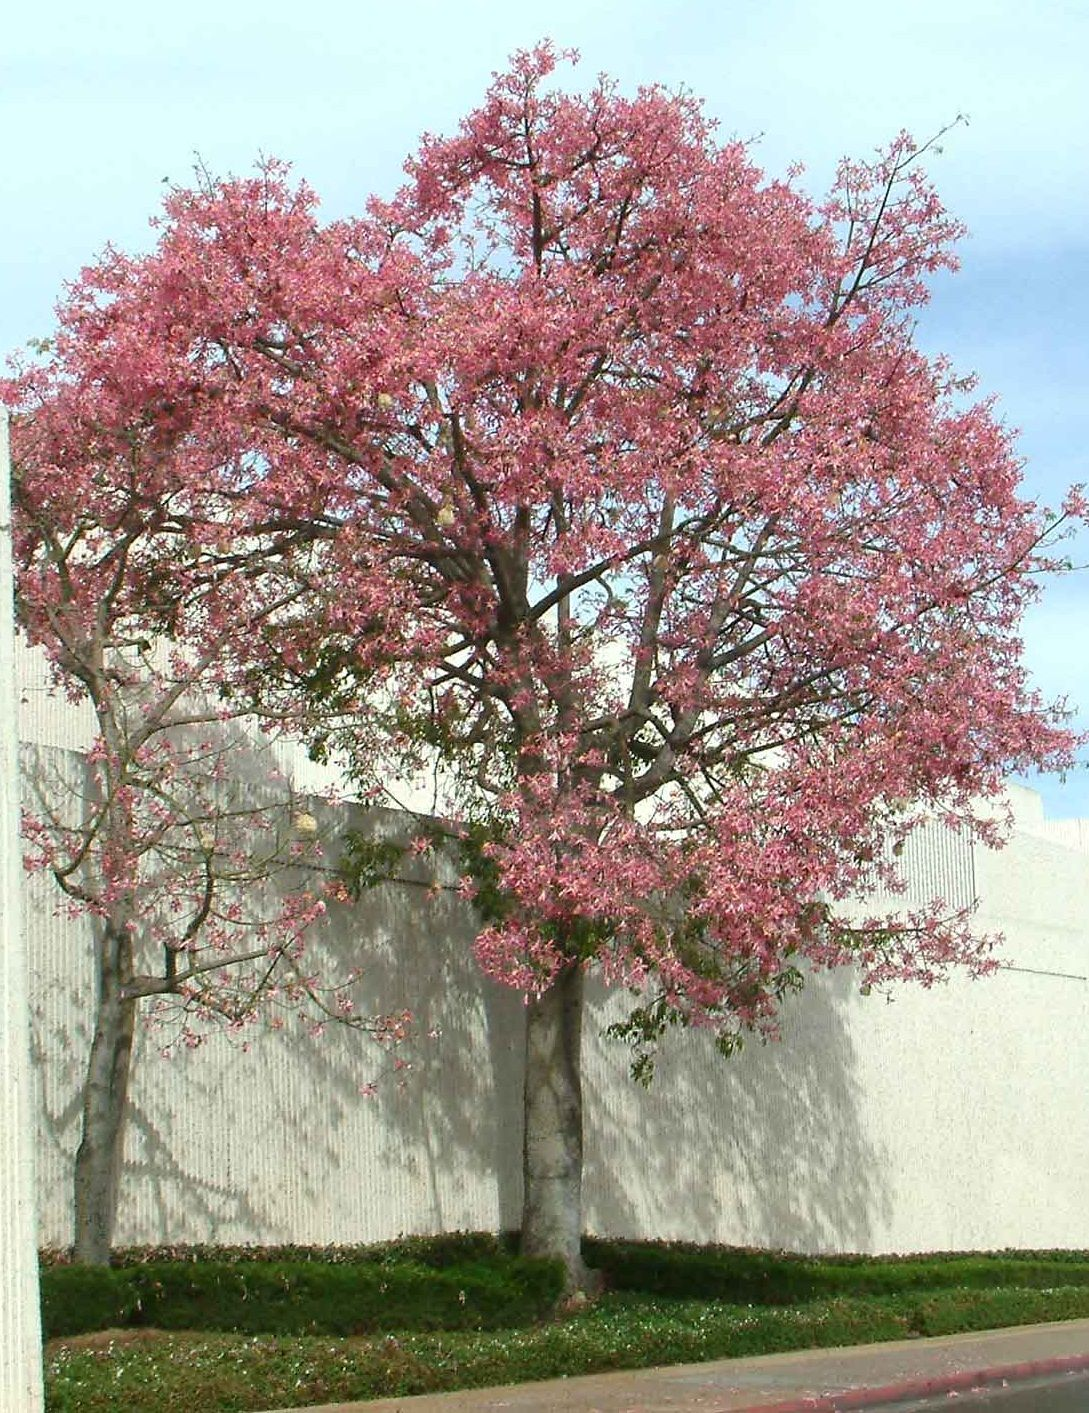 Ceiba speciosalk floss tree non native semi deciduous tree silk floss tree non native semi deciduous tree large dangerous thorns on the trunk and branches large showy pale pink flowers summer to fall mightylinksfo